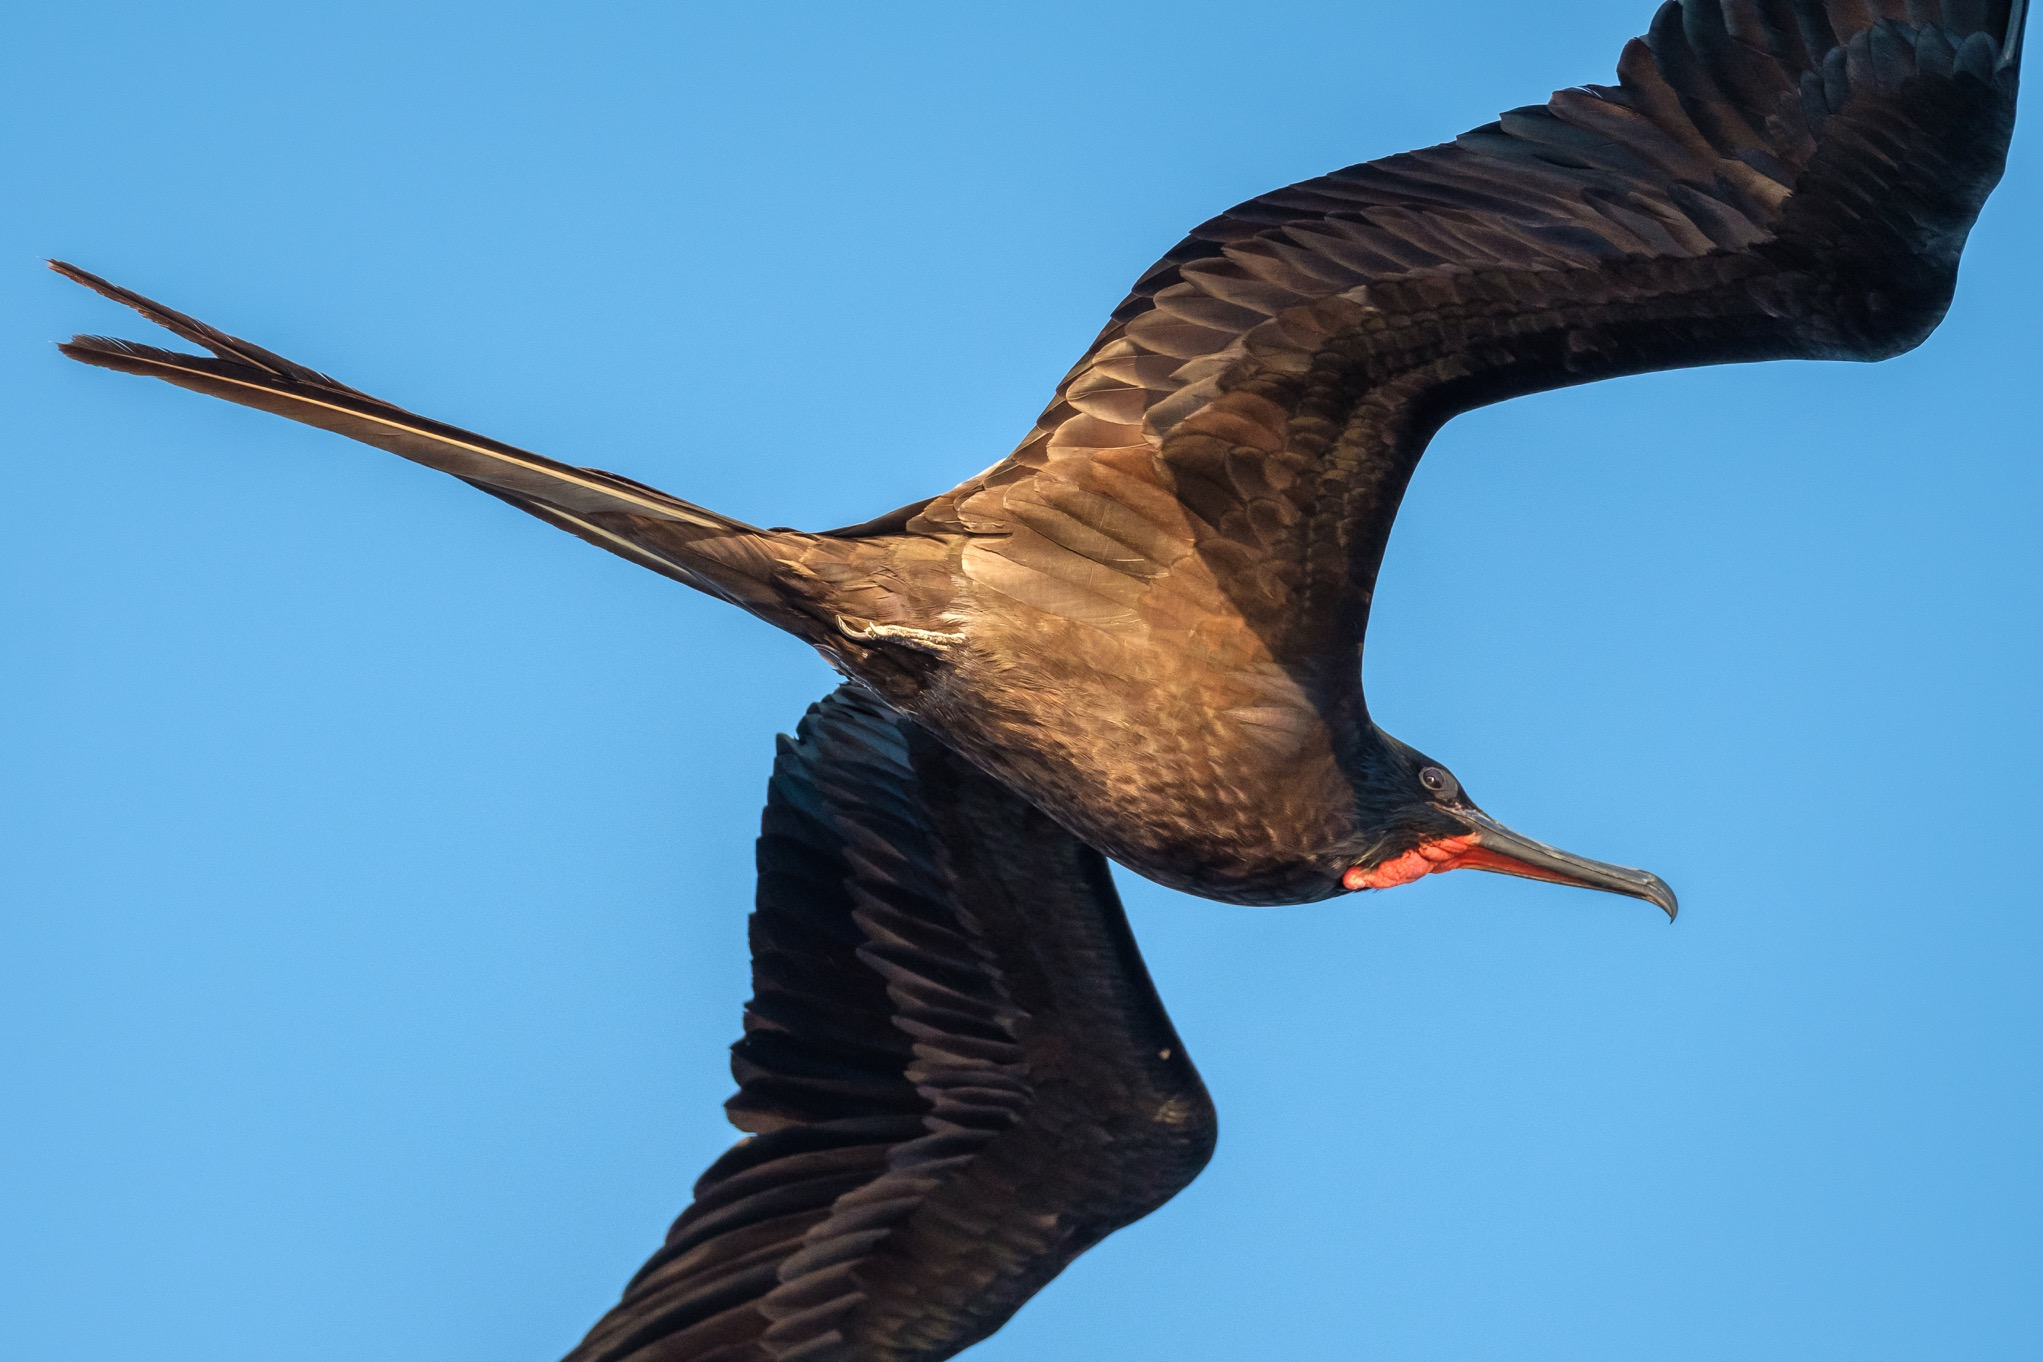 At dusk, this male frigatebird coasted near the mast of our boat for hours.